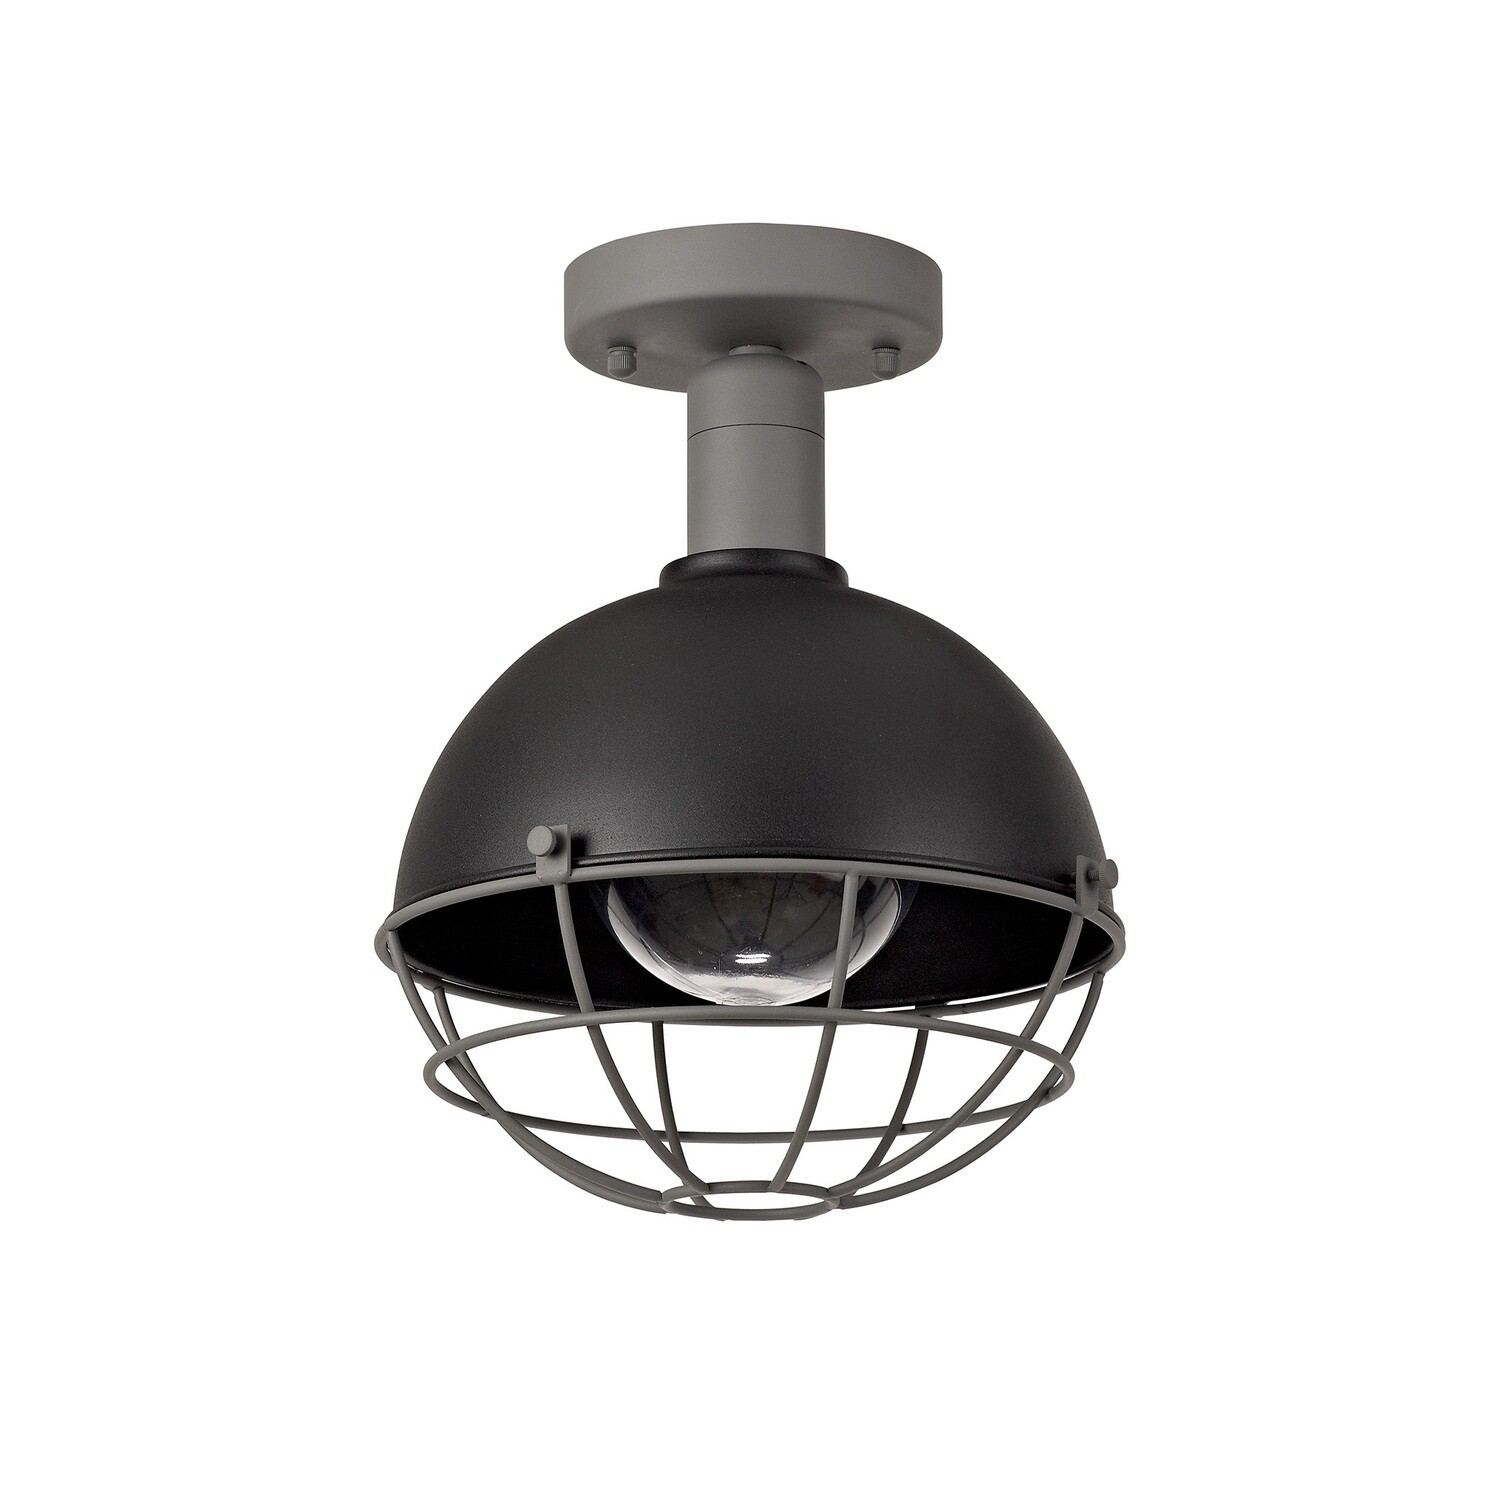 Rami Ceiling, 1 Light E27, IP65, Matt Black/Grey